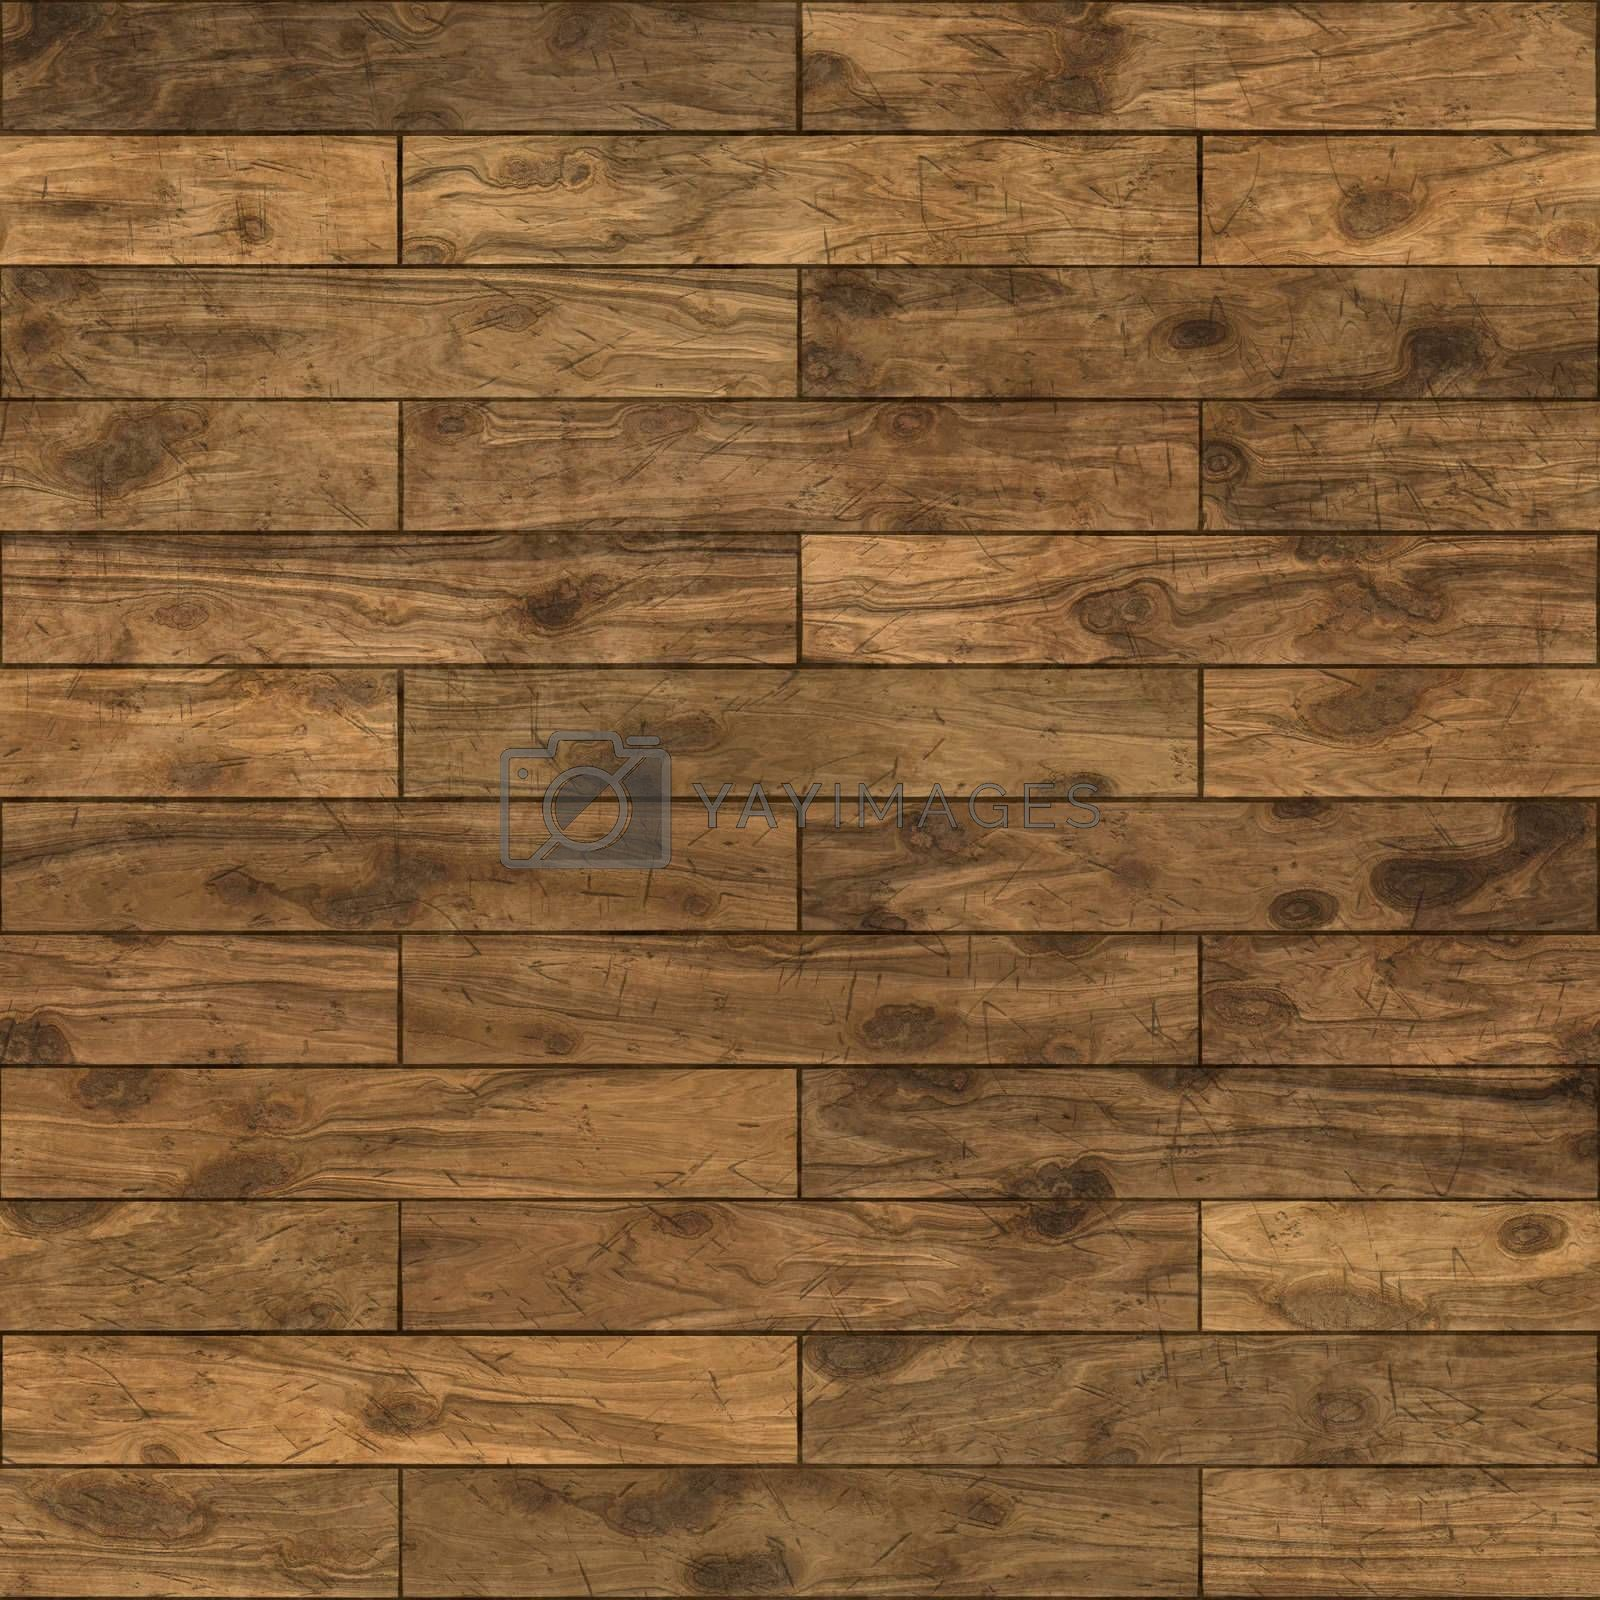 Royalty free image of wood by magann